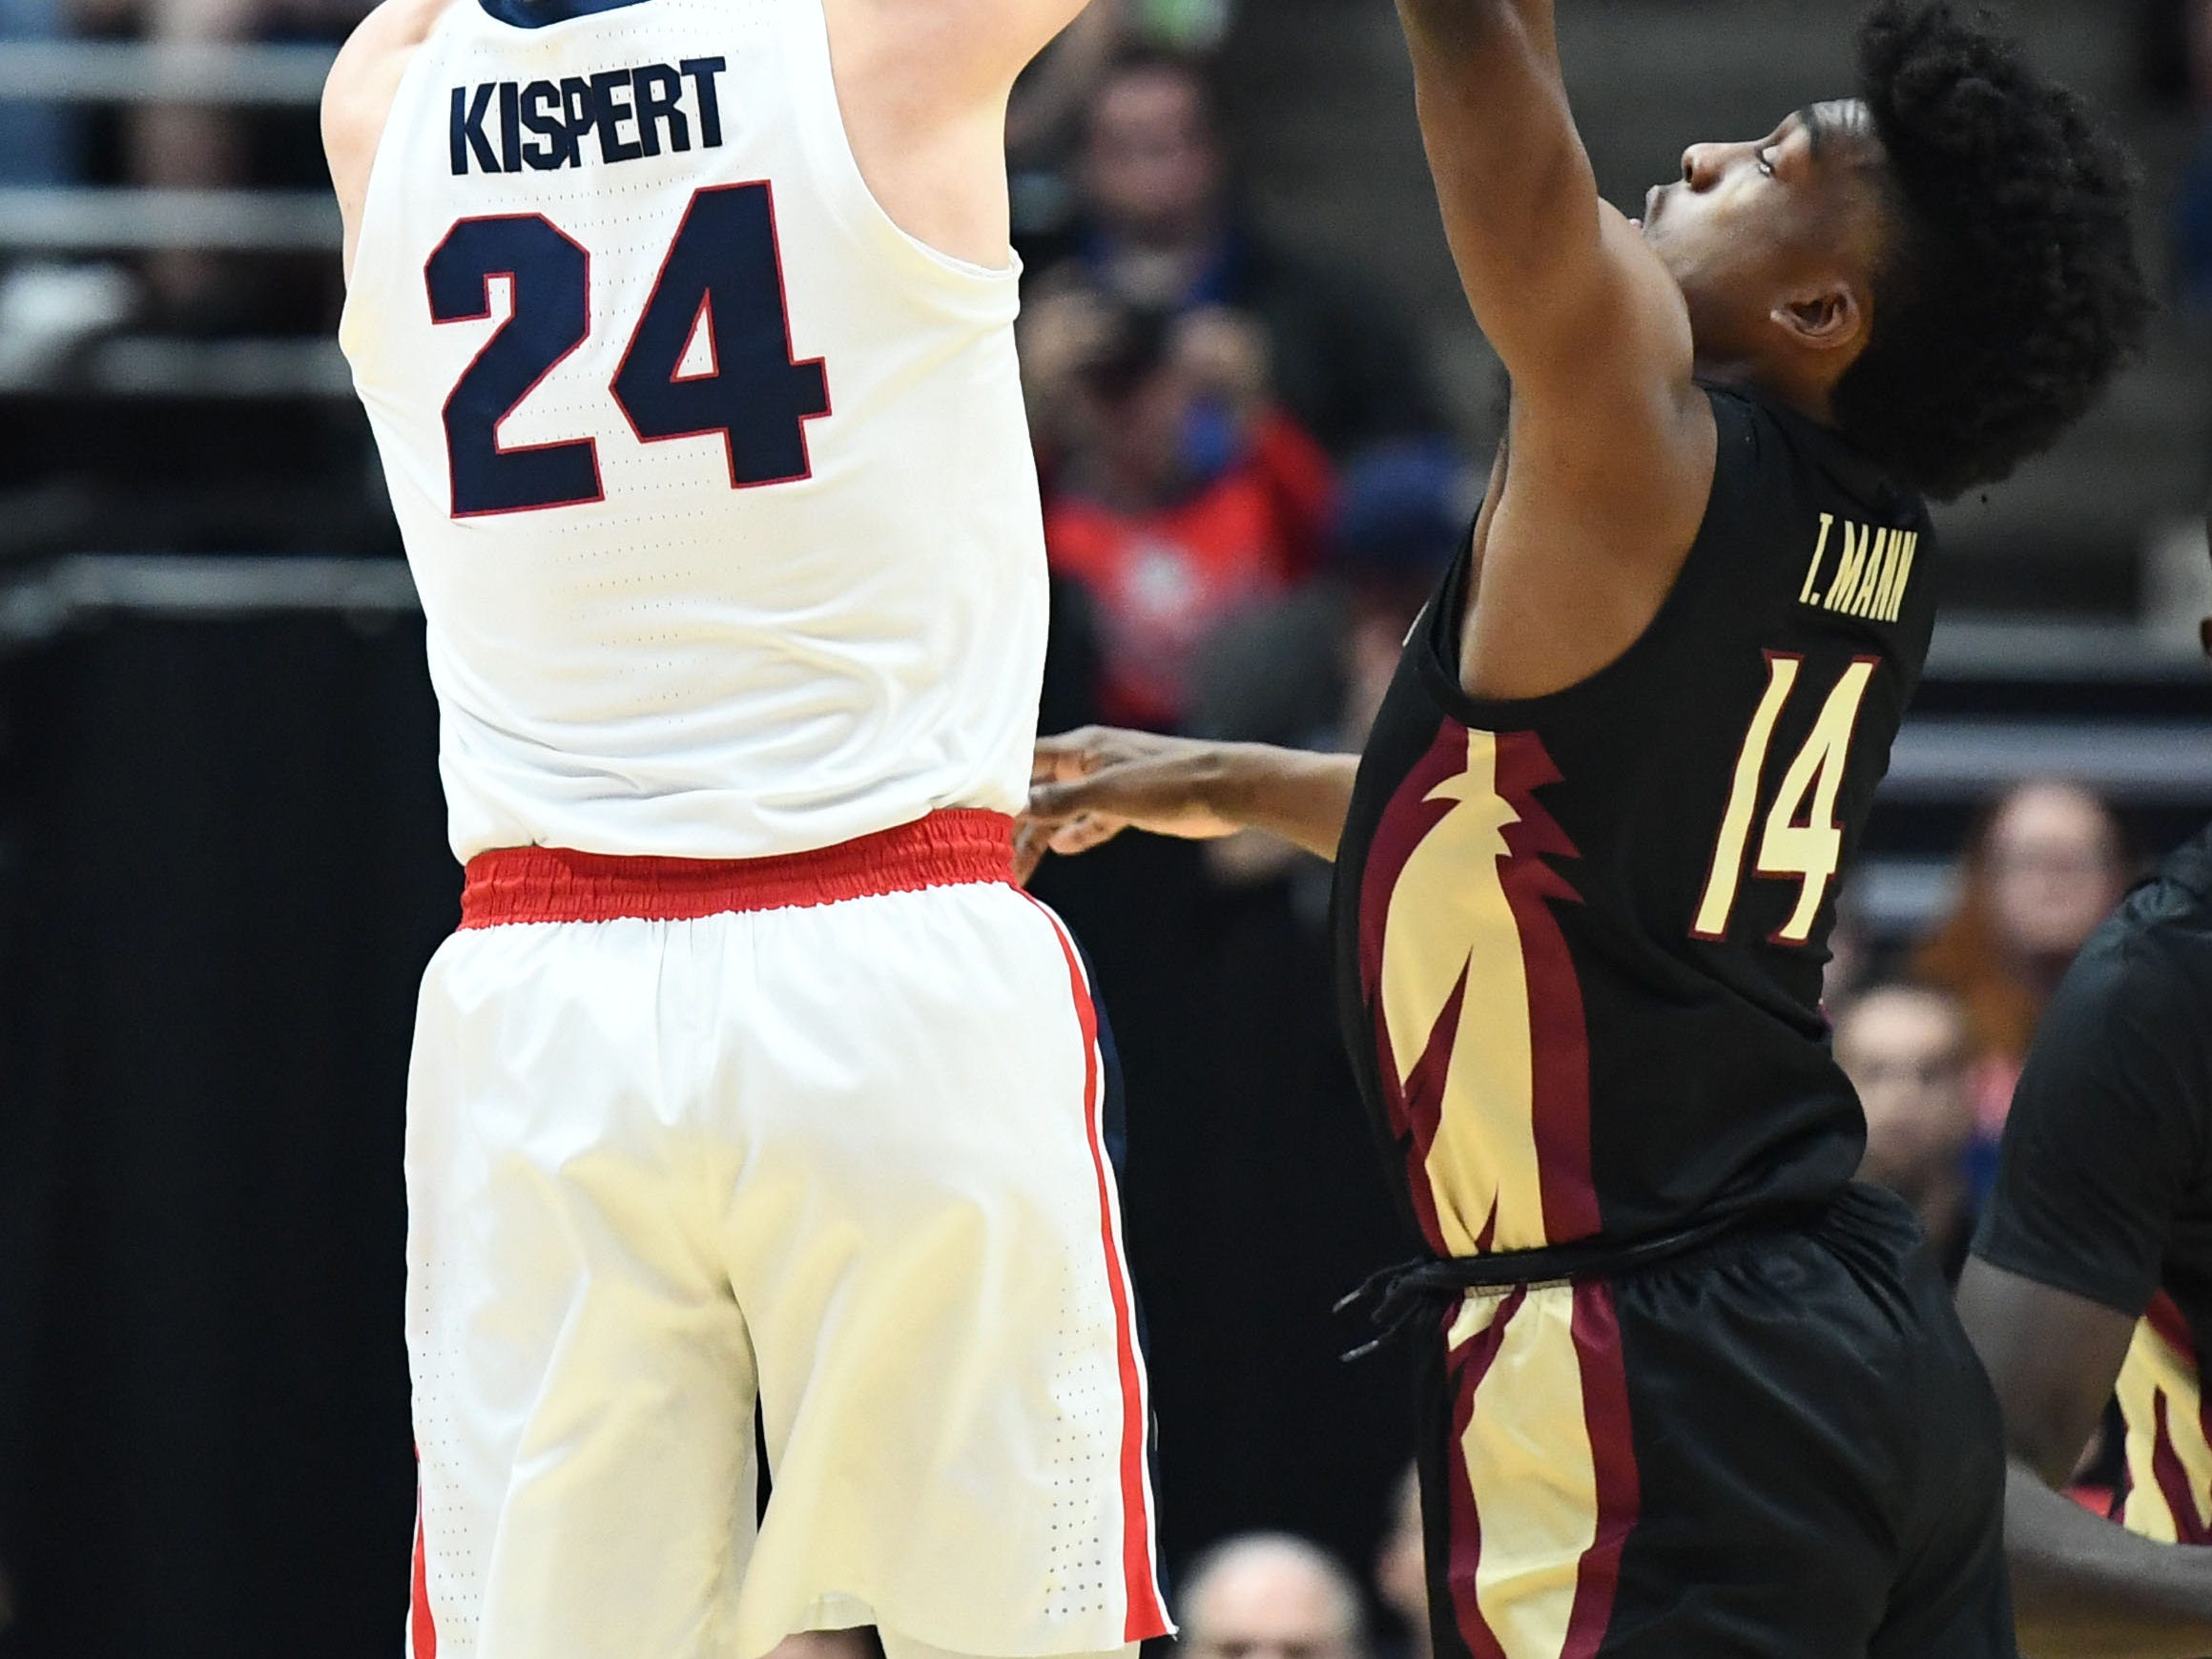 March 28, 2019; Anaheim, CA, USA; Gonzaga Bulldogs forward Corey Kispert (24) shoots against Florida State Seminoles guard Terance Mann (14) during the first half in the semifinals of the west regional of the 2019 NCAA Tournament at Honda Center. Mandatory Credit: Robert Hanashiro-USA TODAY Sports